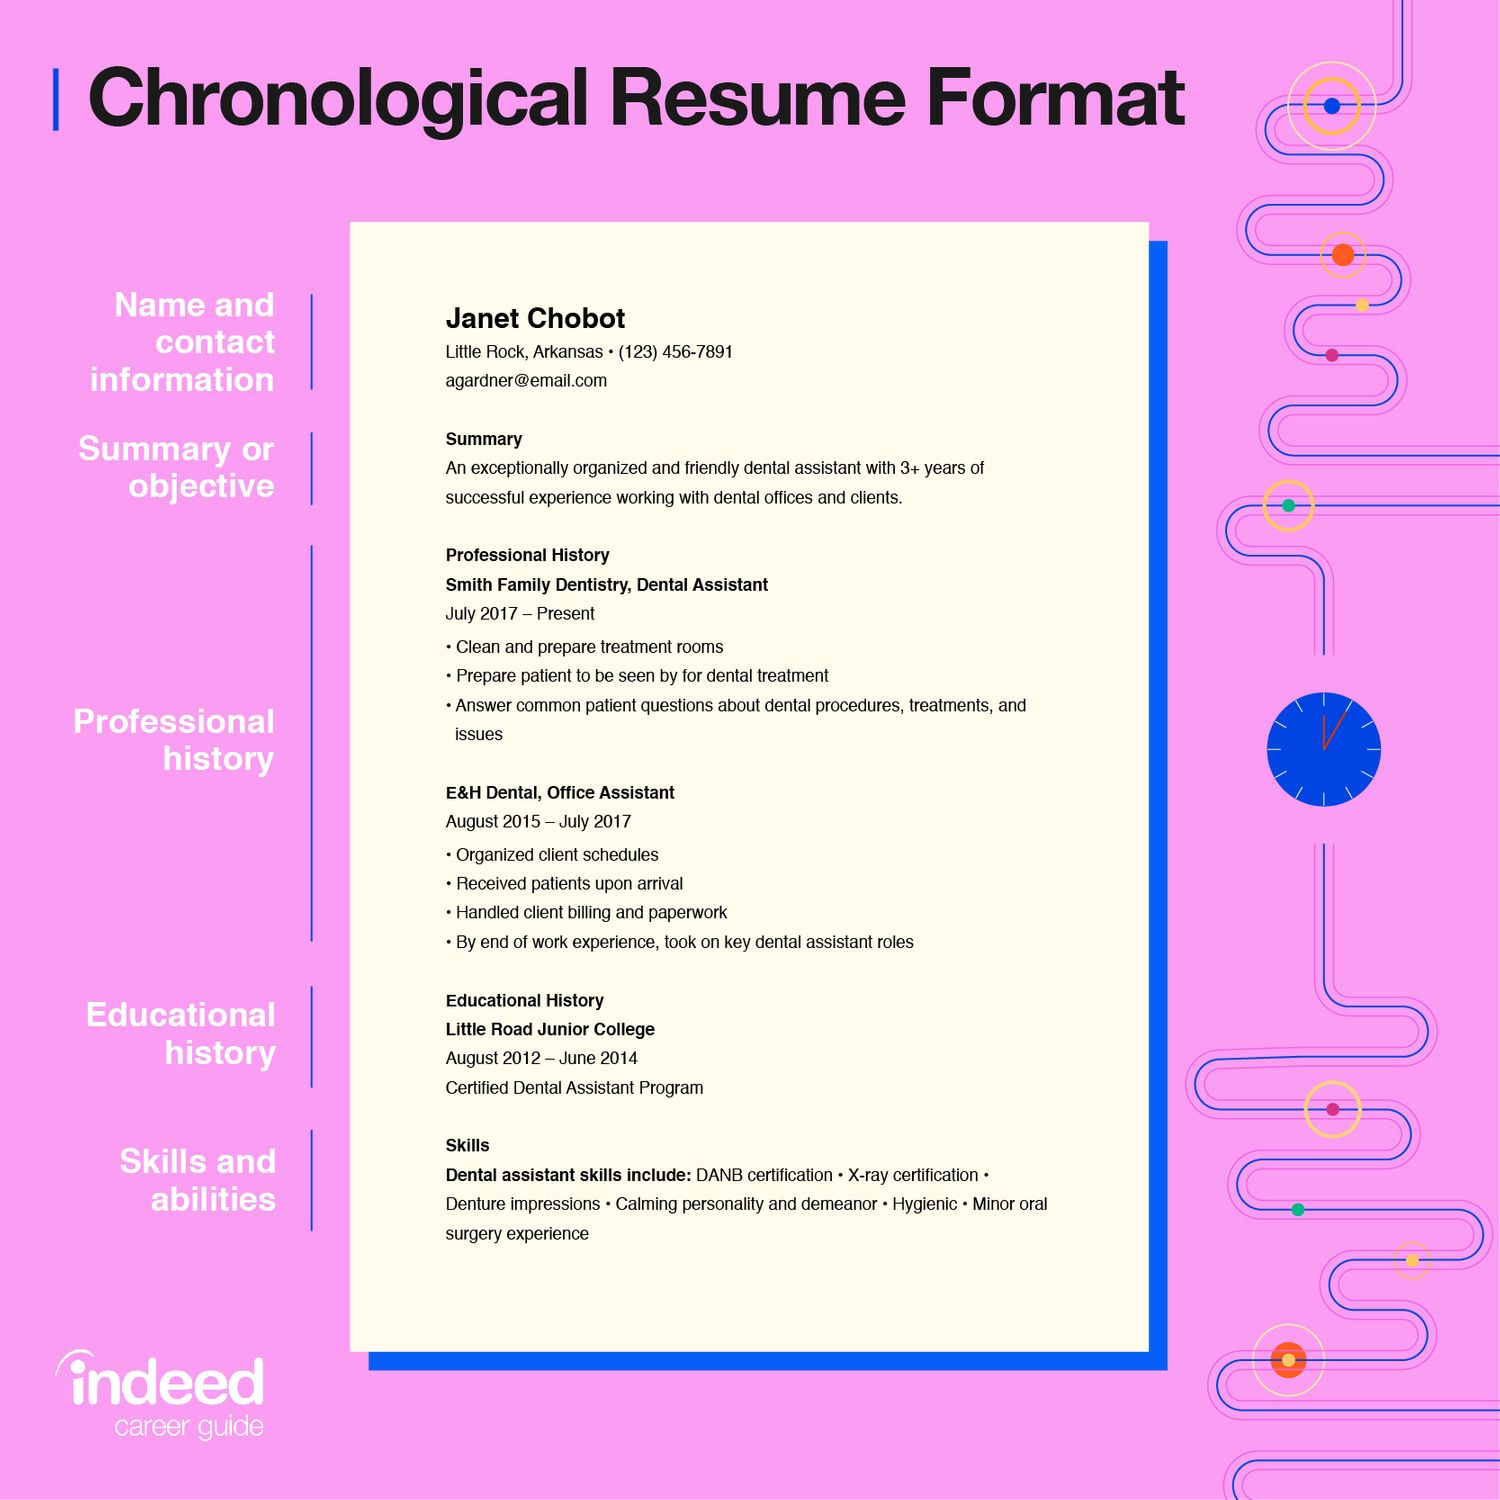 resume format guide tips and examples of the best formats indeed most used resized sharm Resume Most Used Resume Format